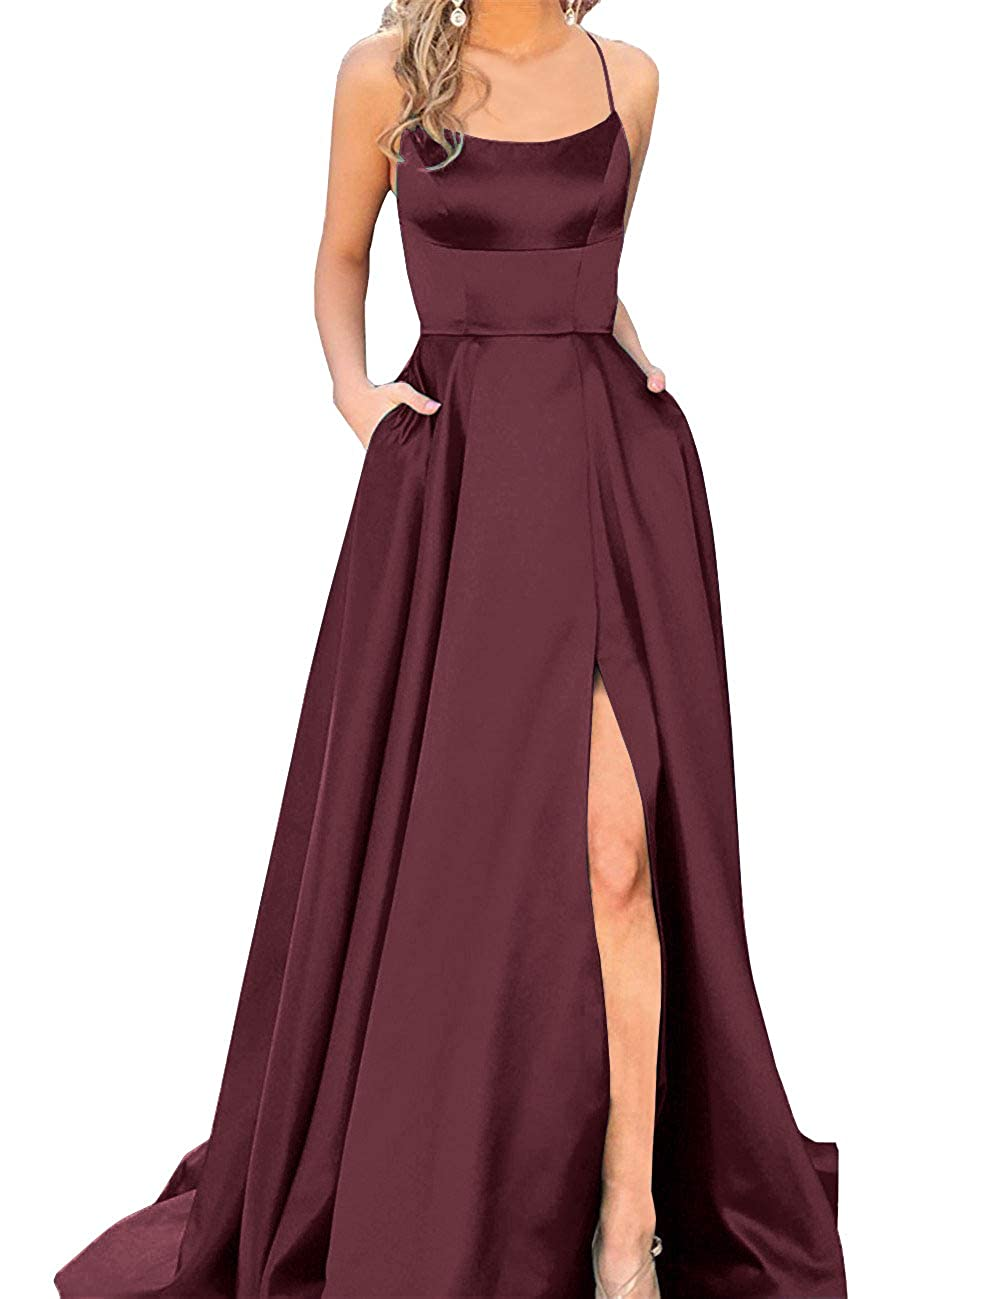 95985b68d488 Sexy Side Split Formal Evening Gowns Spaghetti Straps Prom Dresses Long  with Pockets at Amazon Women's Clothing store: